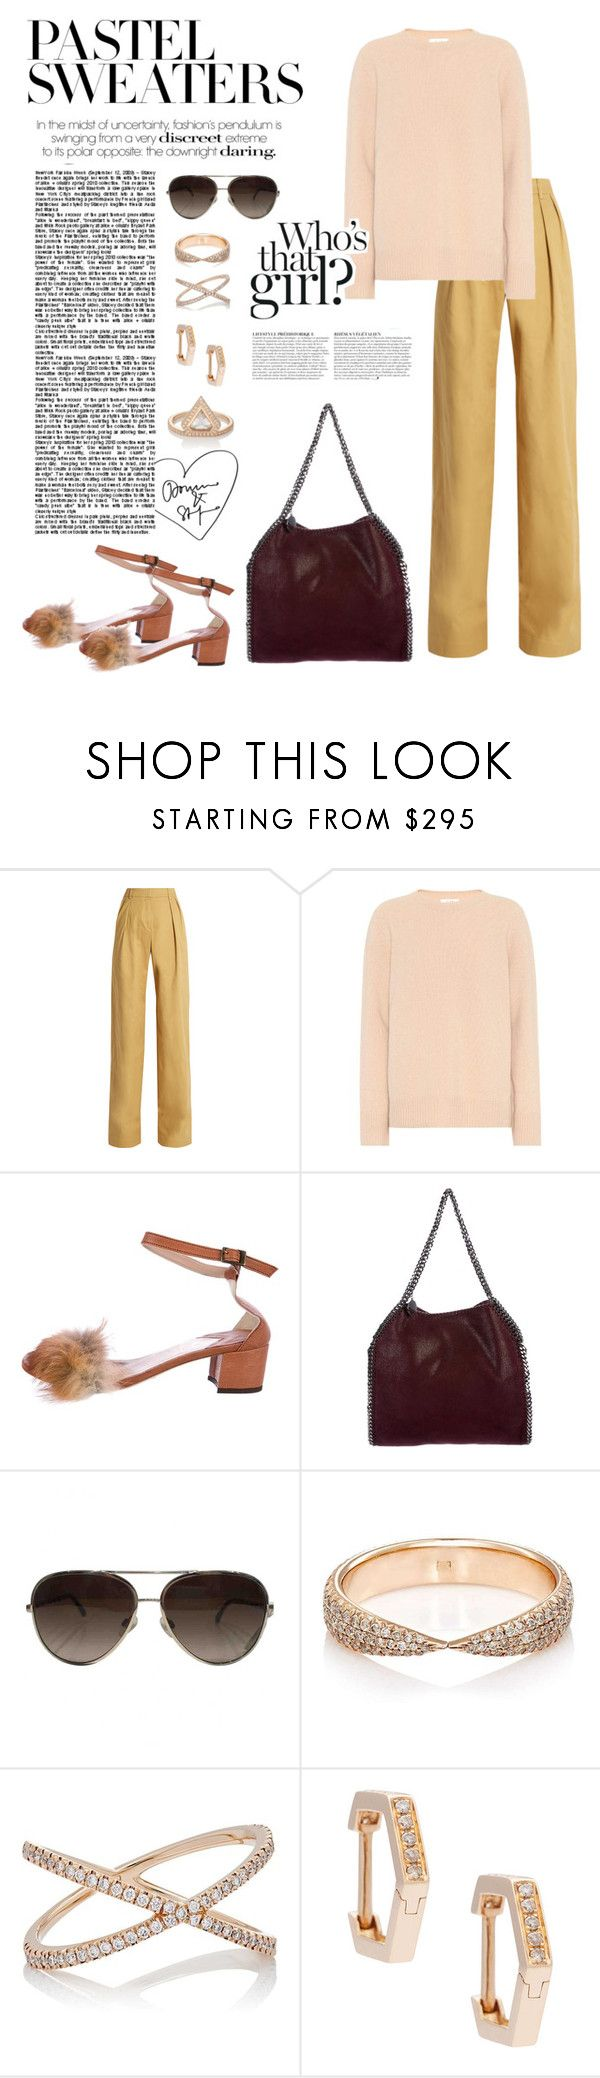 """""""Pastel Sweaters"""" by windrasiregar on Polyvore featuring palmer//harding, The Row, Brother Vellies, STELLA McCARTNEY, Chanel, Eva Fehren and Anja"""